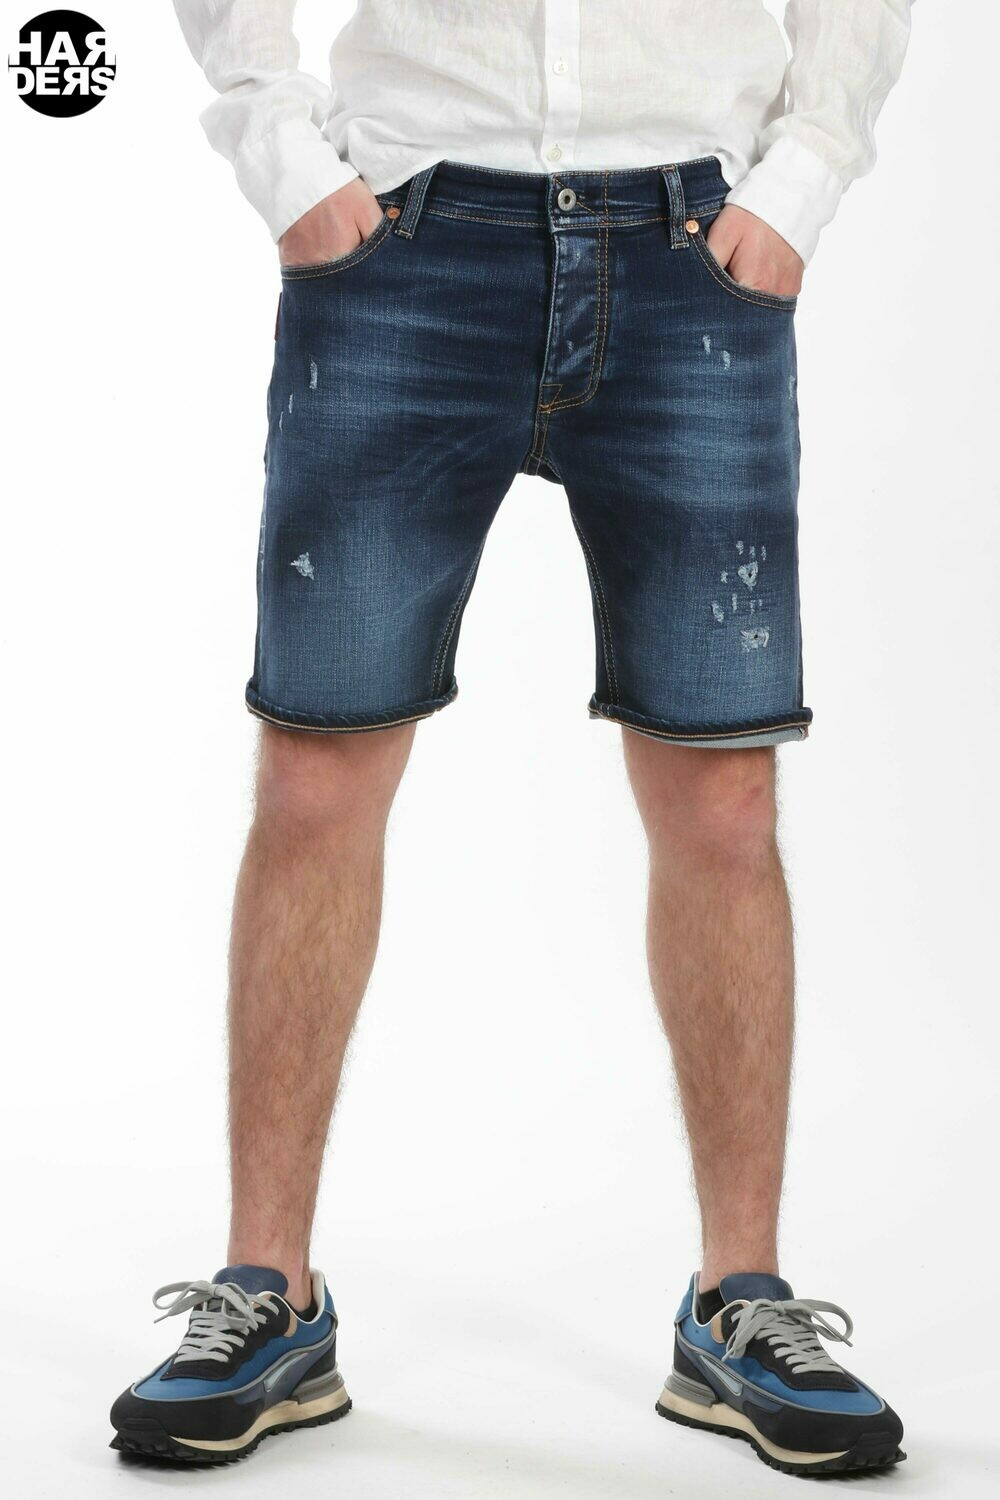 Taylor Tweed Jeans-Short CHARGER